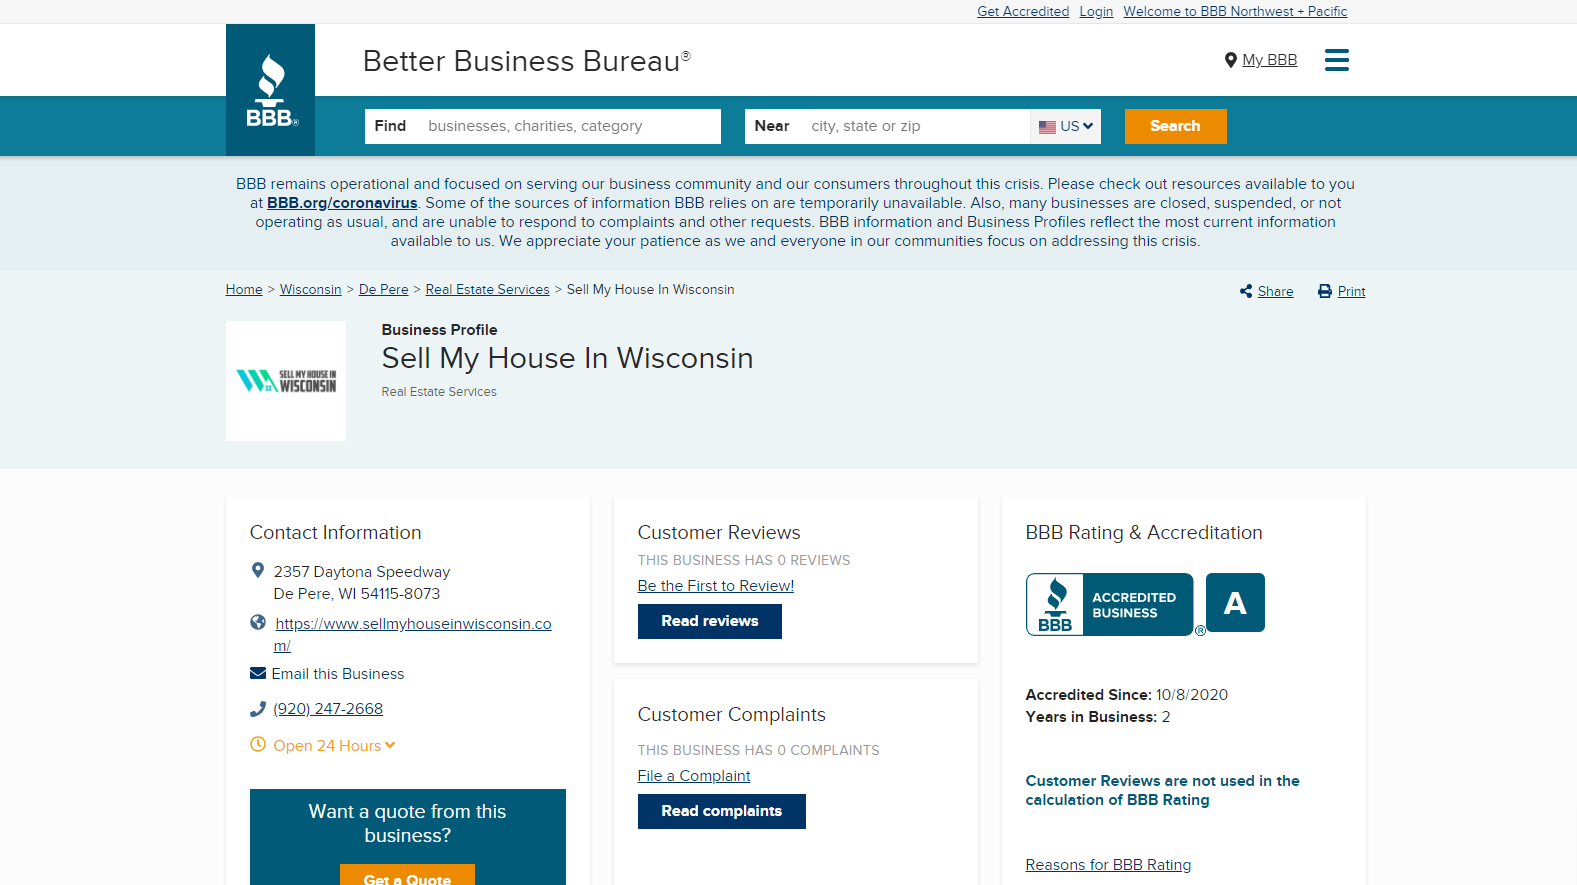 Better Business Bureau page for Sell My House In Wisconsin